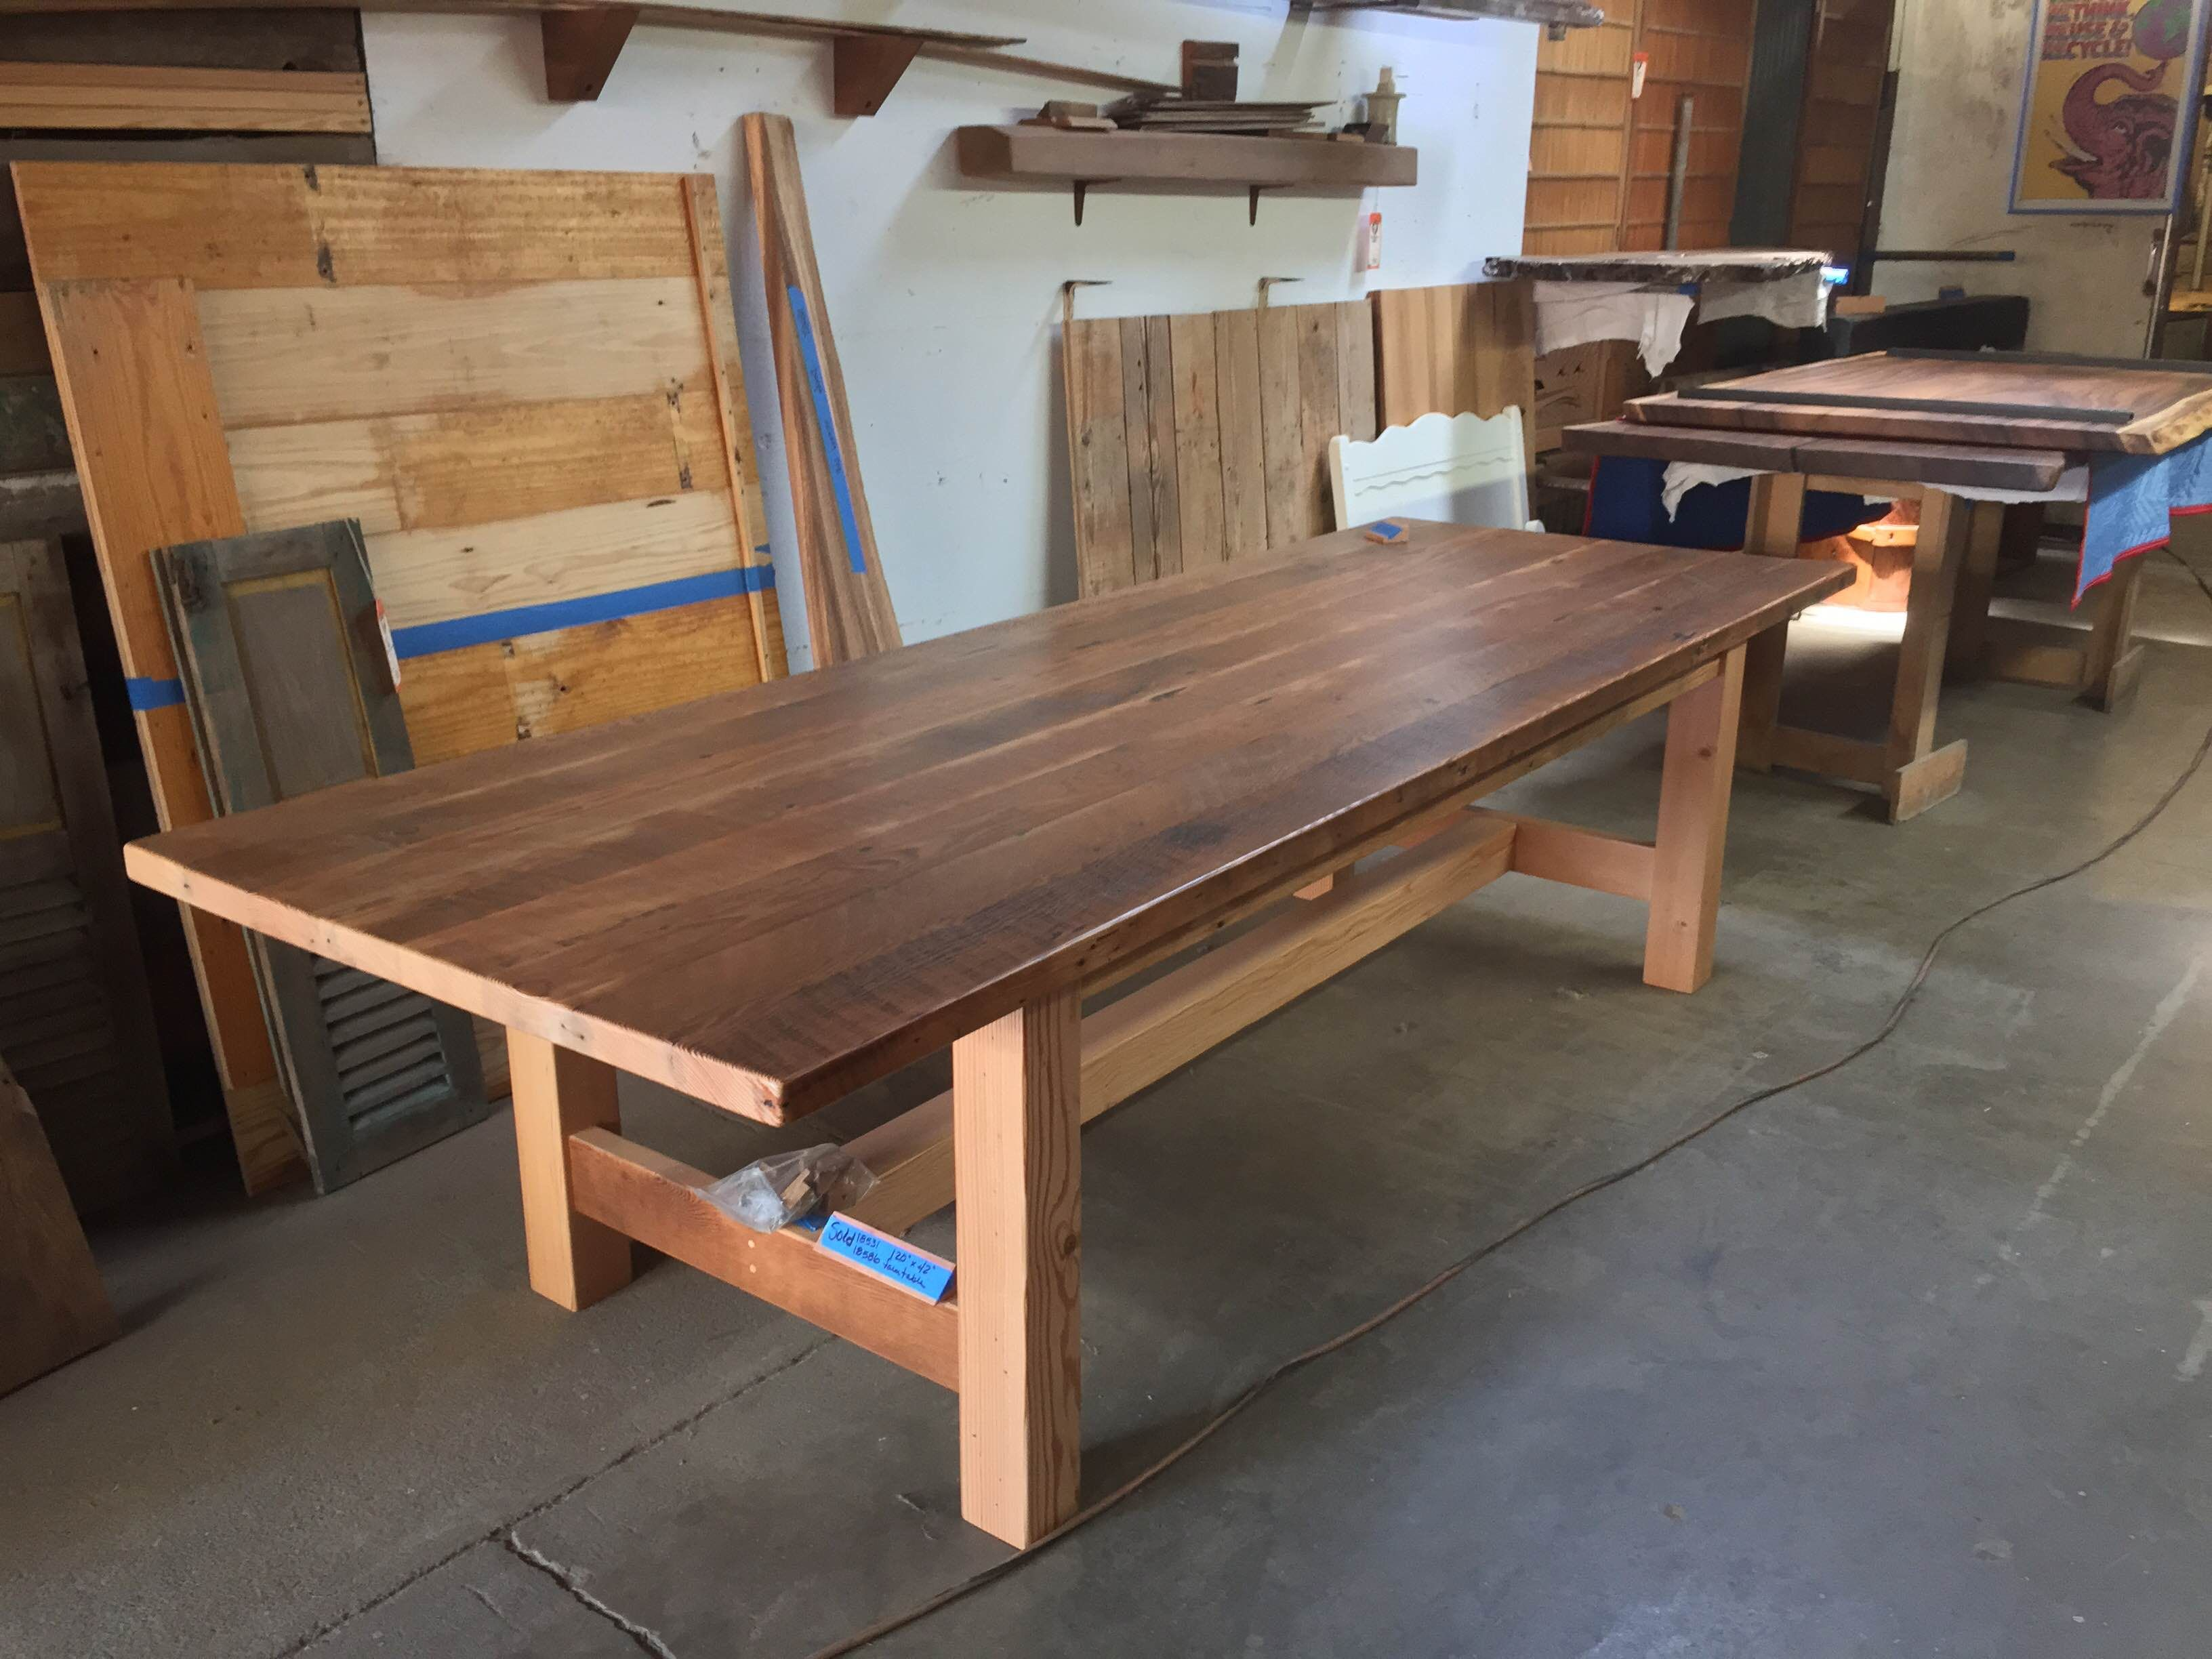 Rough Sawn douglas fir craftsman style dining table. Rough Sawn douglas fir craftsman style dining table    Reclaimed